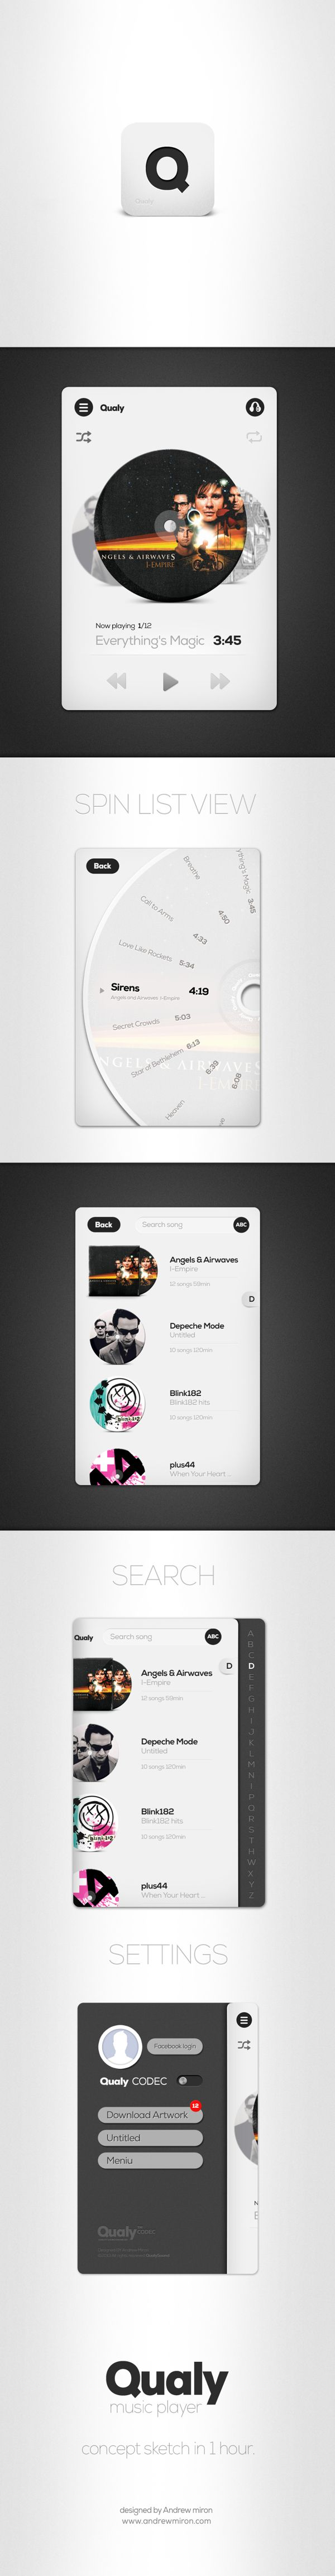 Qualy app. by Andrew Miron, via Behance #mobile #ui #ux #interface